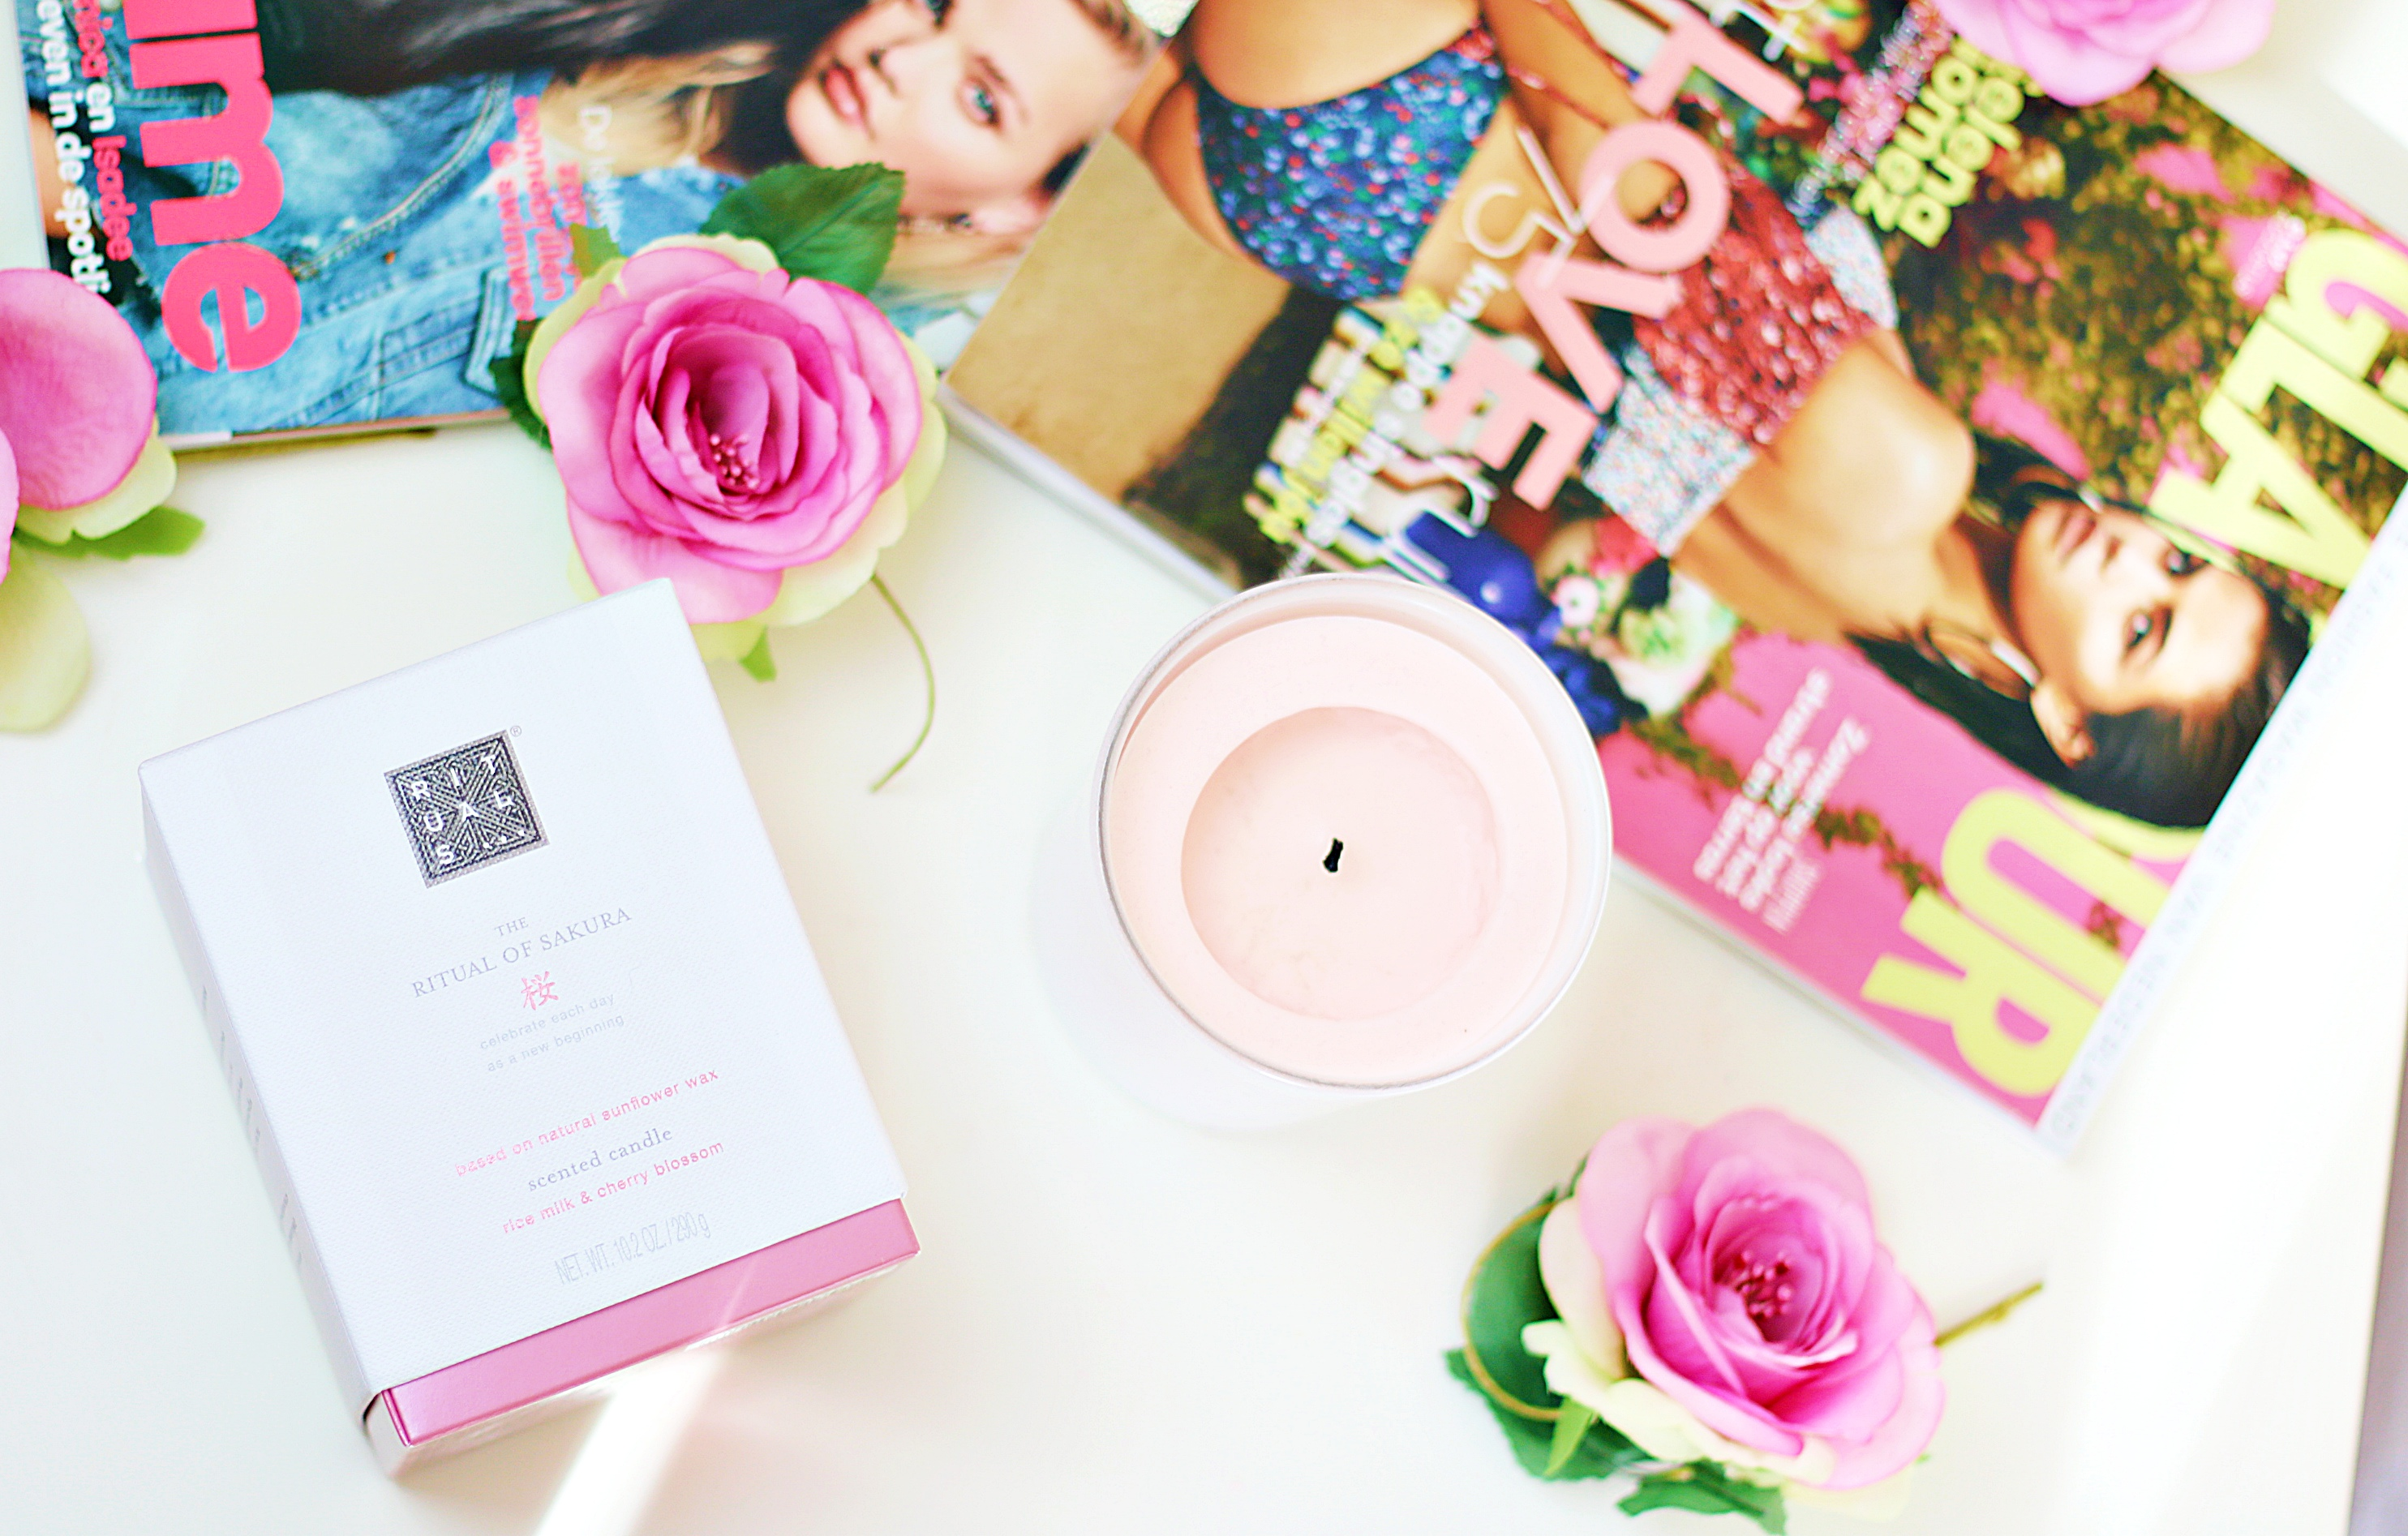 Fragrance Your Room With The Rituals The Ritual Of Sakura Scented Candle